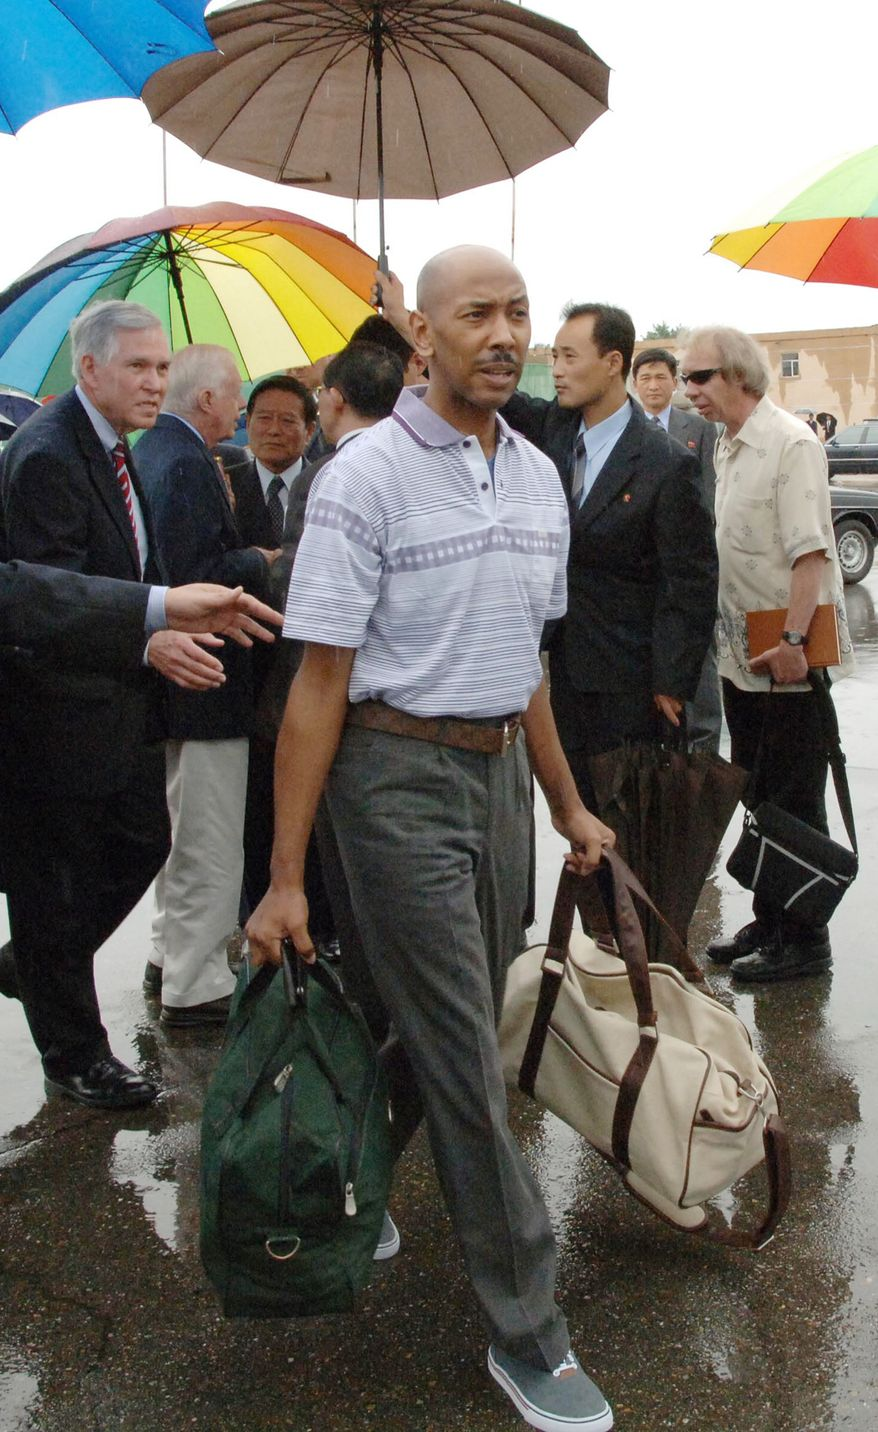 American Aijalon Gomes, center, prepares to leave North Korea from Pyongyang airport, on Friday, Aug, 27, 2010. Mr. Gomes, freed after nearly seven months jailed in North Korea, left Pyongyang on Friday in the company of the former President Jimmy Carter. (AP Photo/Kyodo News)